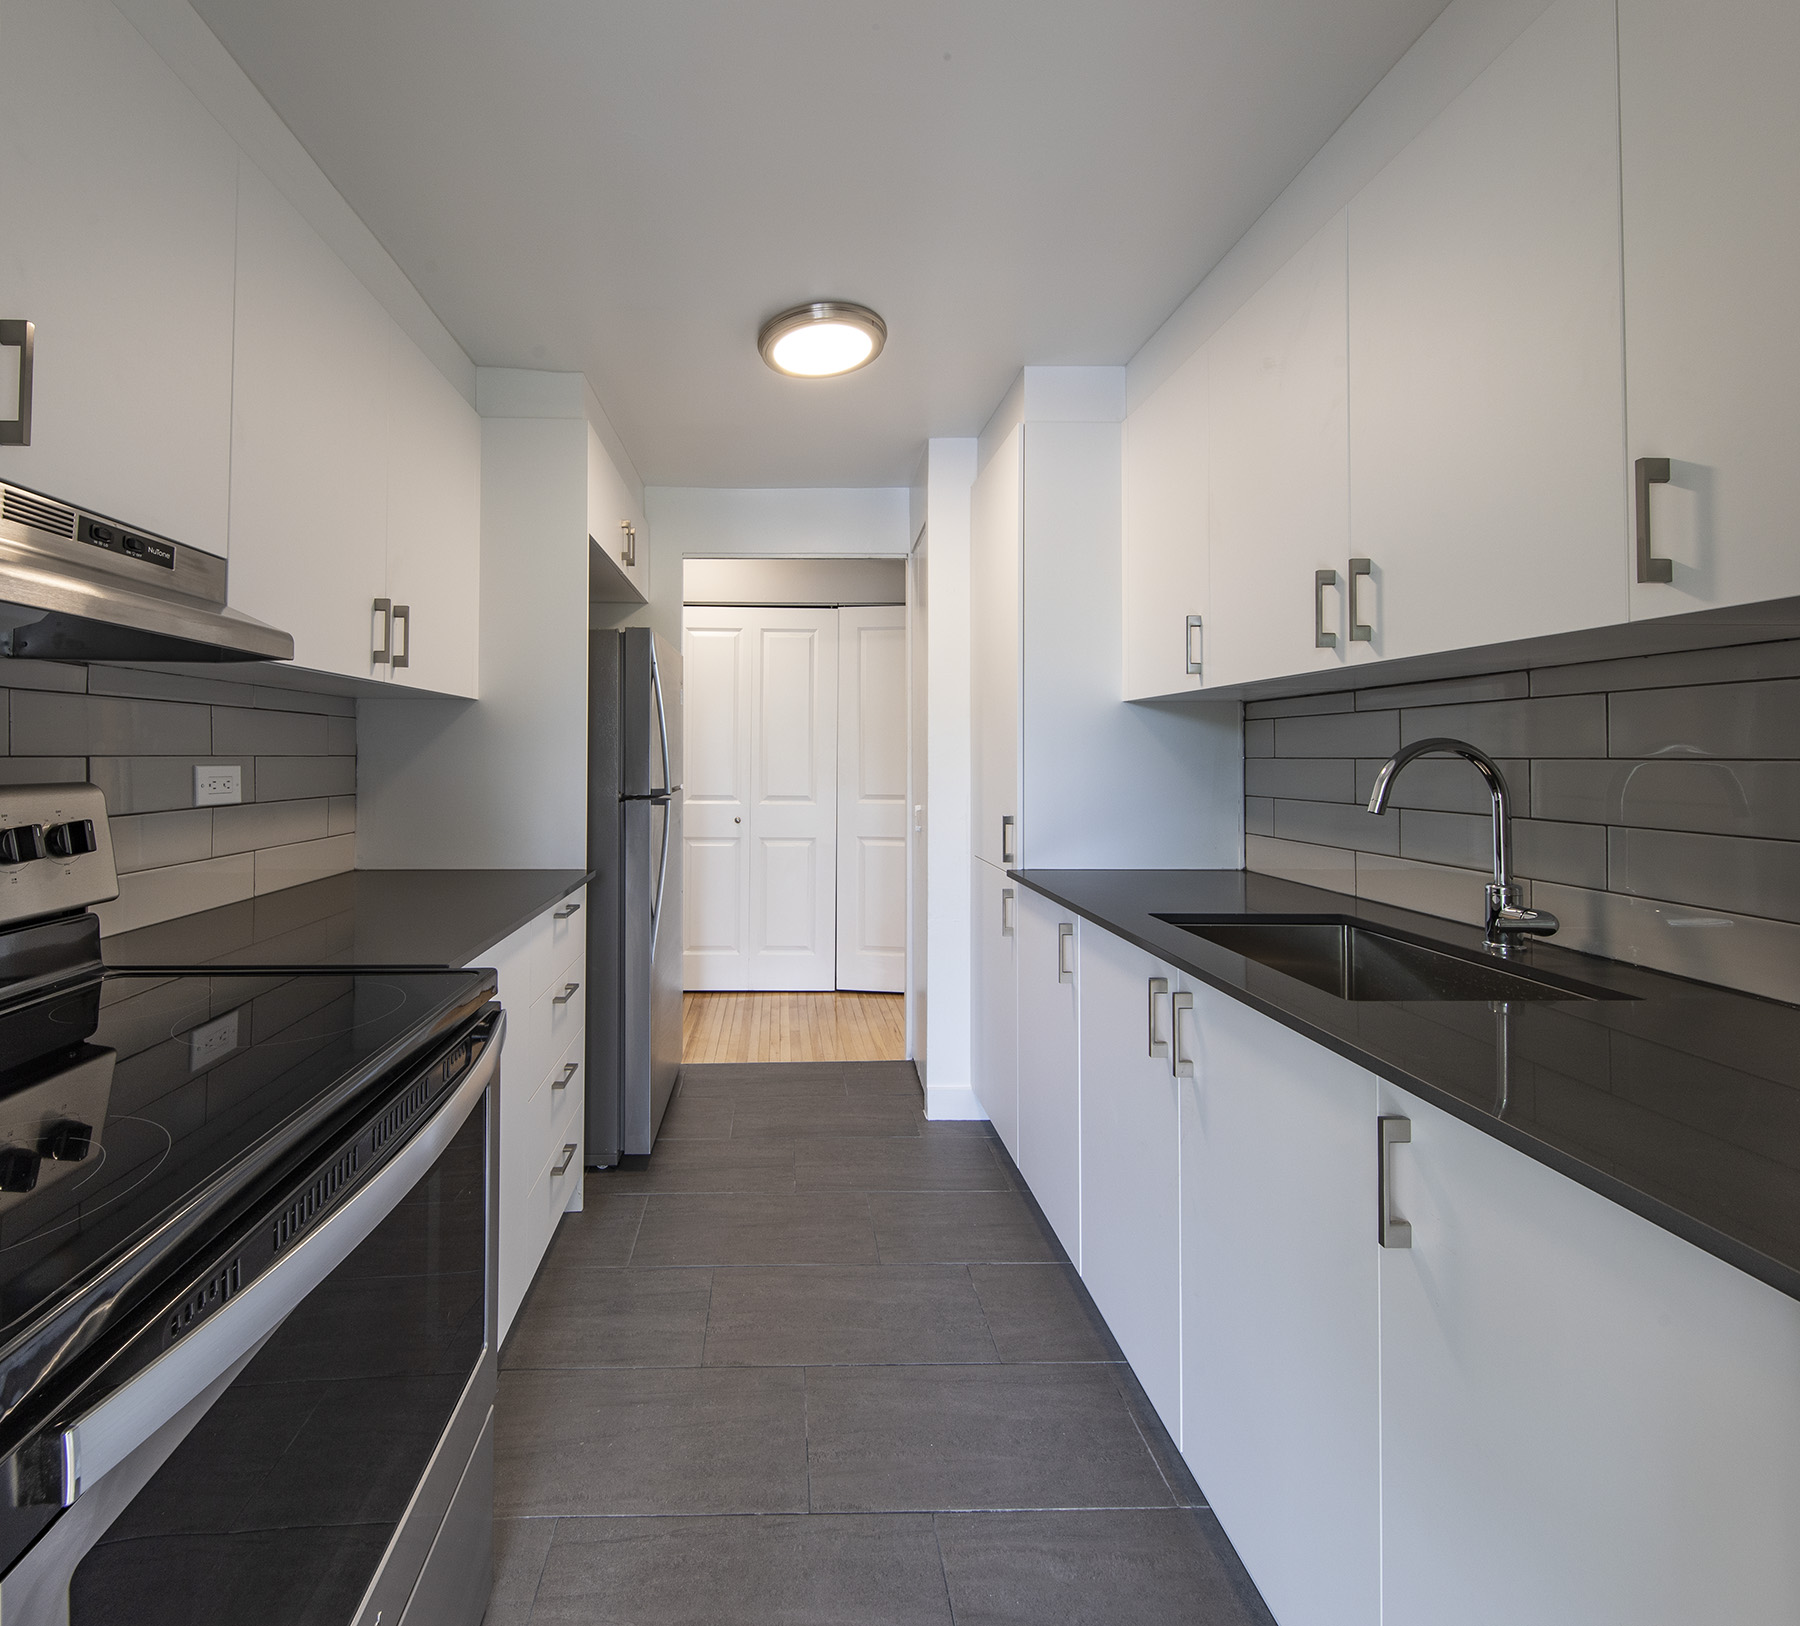 1 bedroom Apartments for rent in Cote-St-Luc at 5765 Cote St-Luc - Photo 03 - RentQuebecApartments – L401532